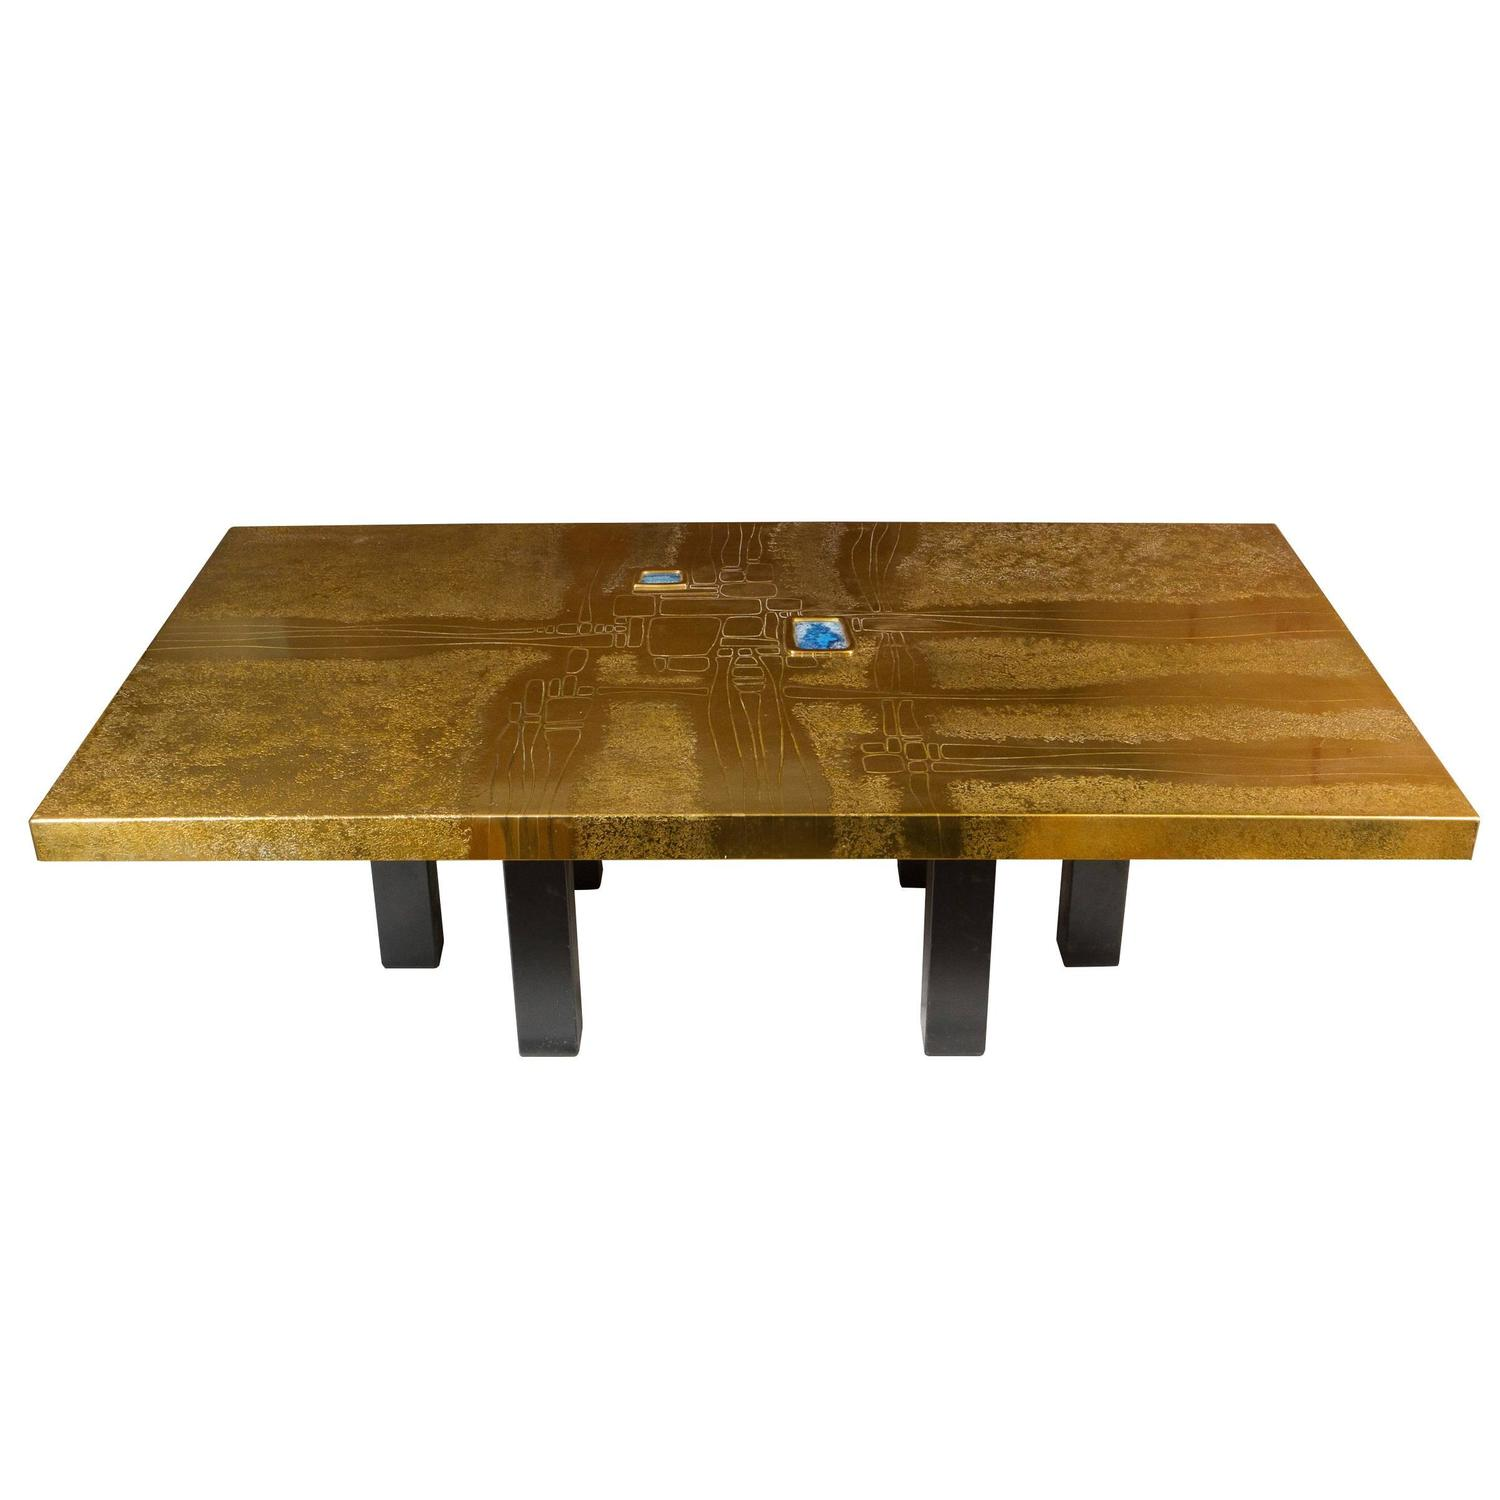 Custom Coffee Table by Lova Creation For Sale at 1stdibs